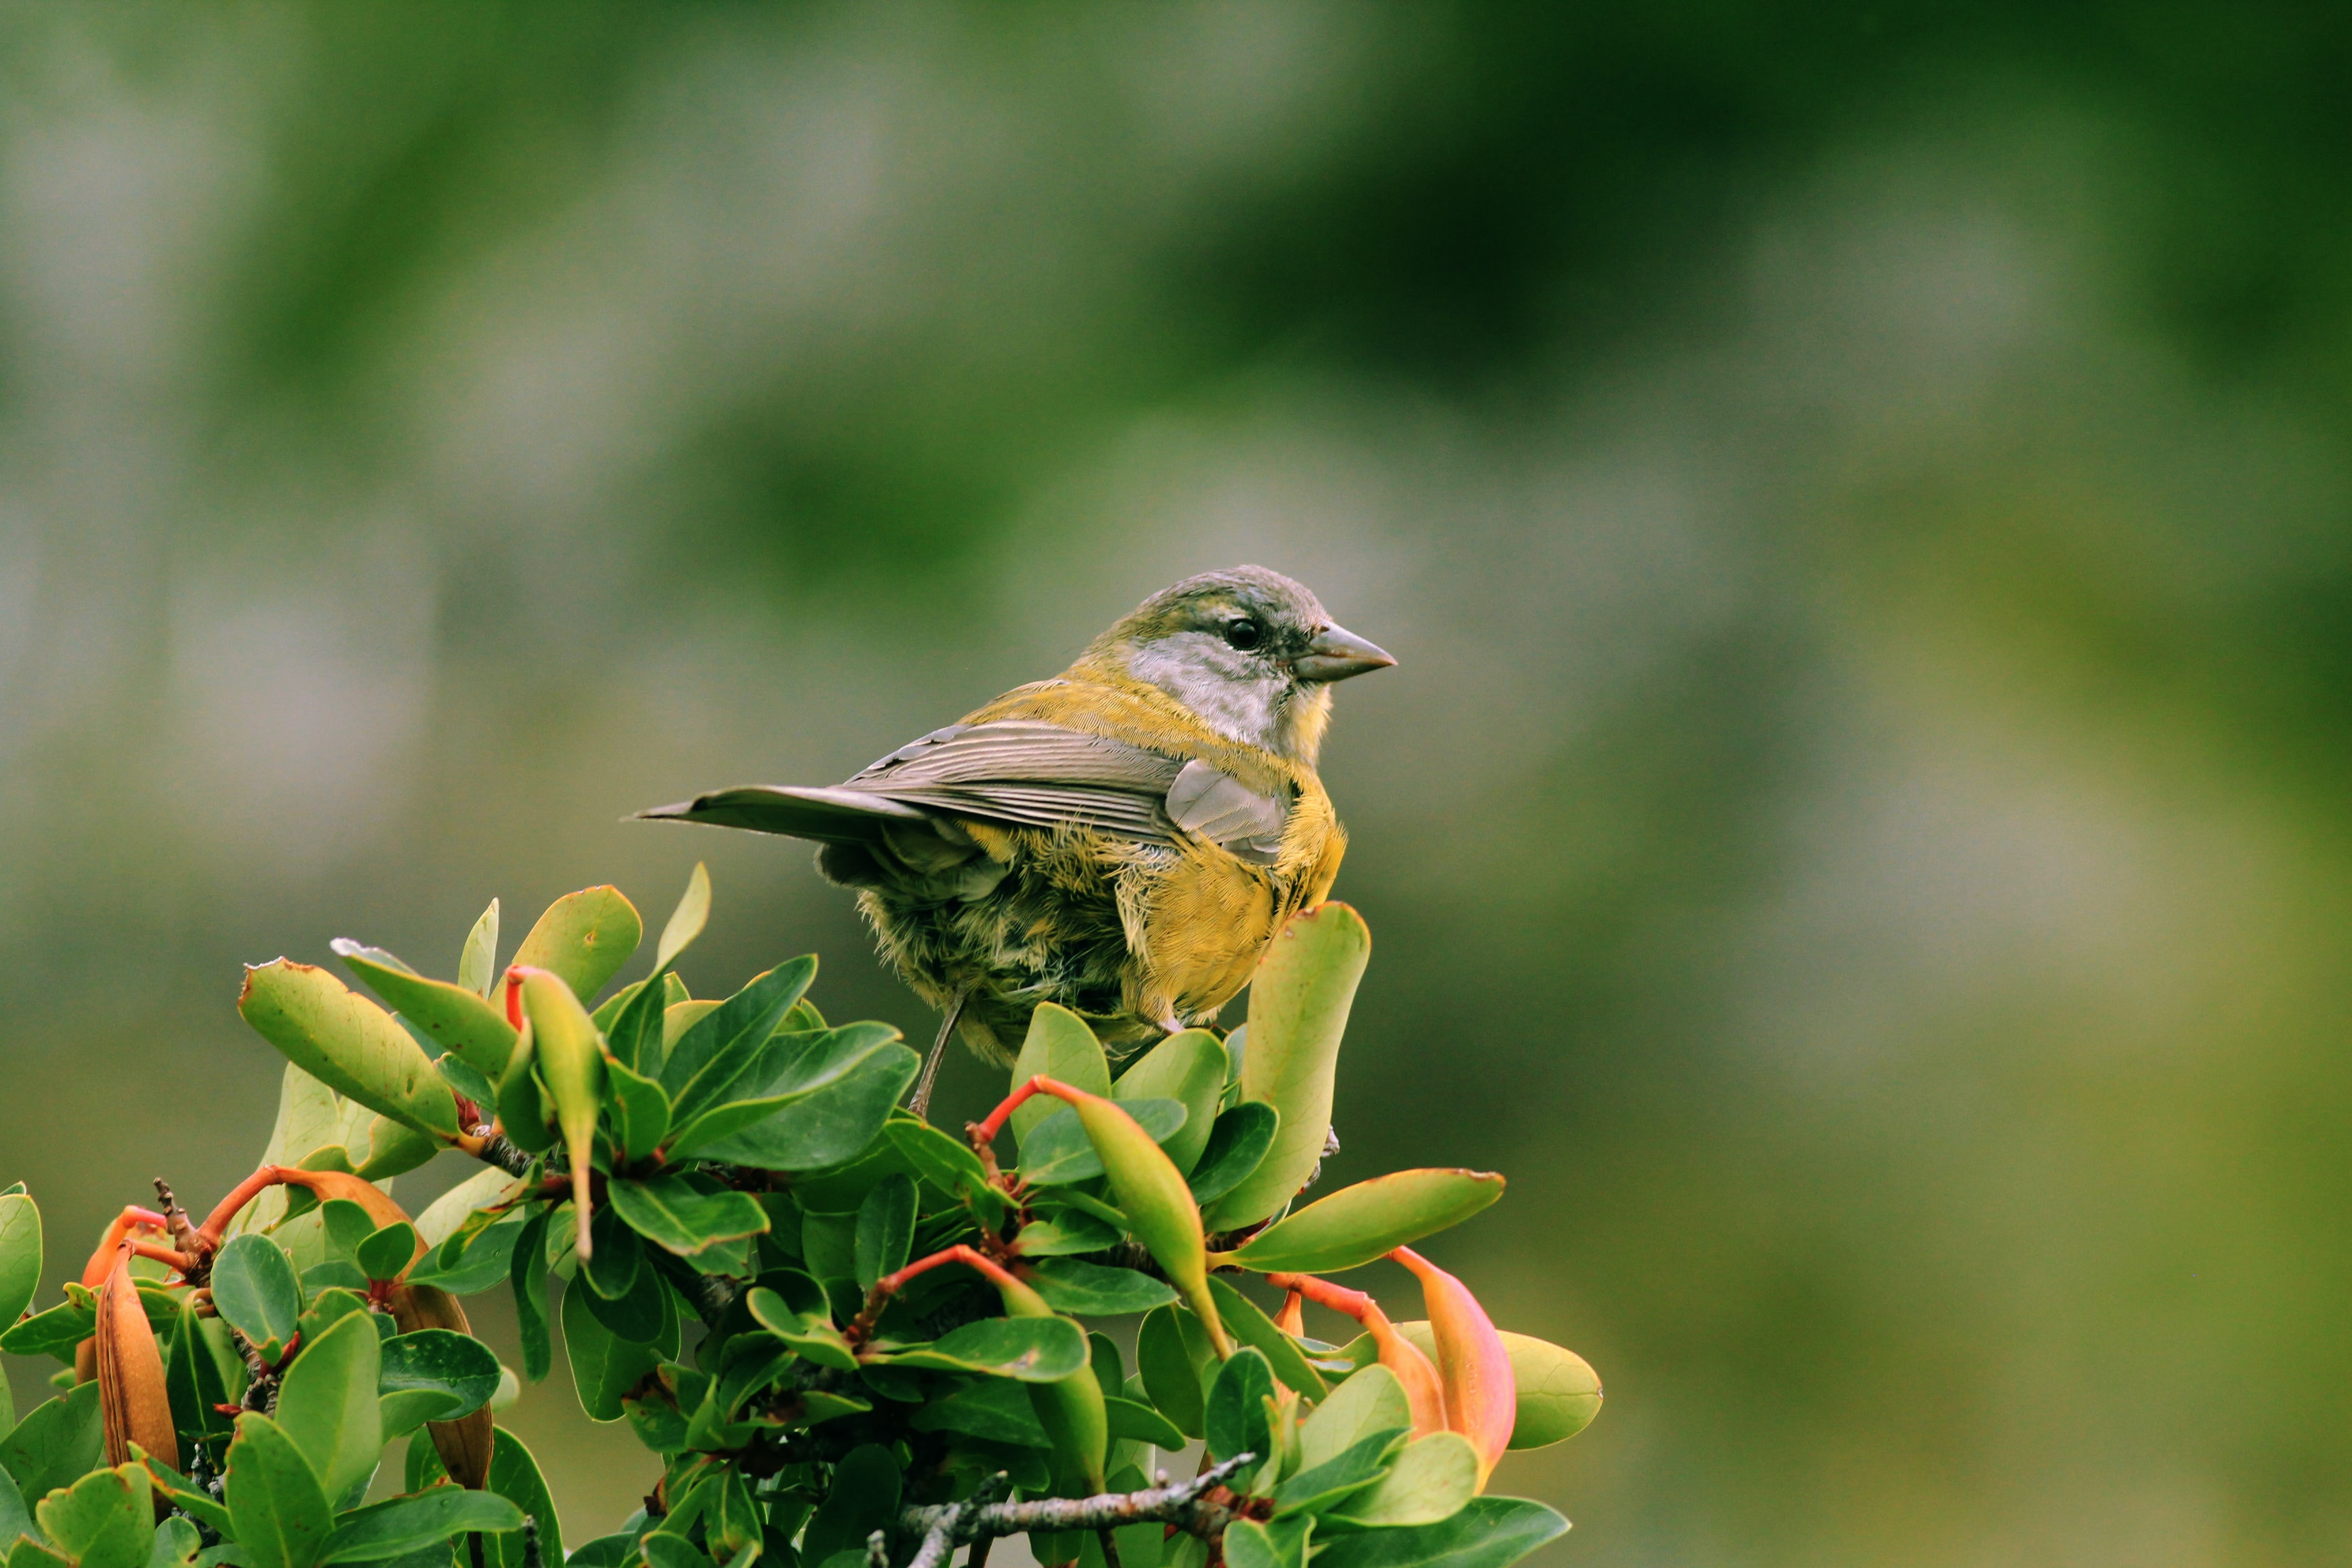 Small yellow and gray bird perched on a leafy branch in a sanctuary